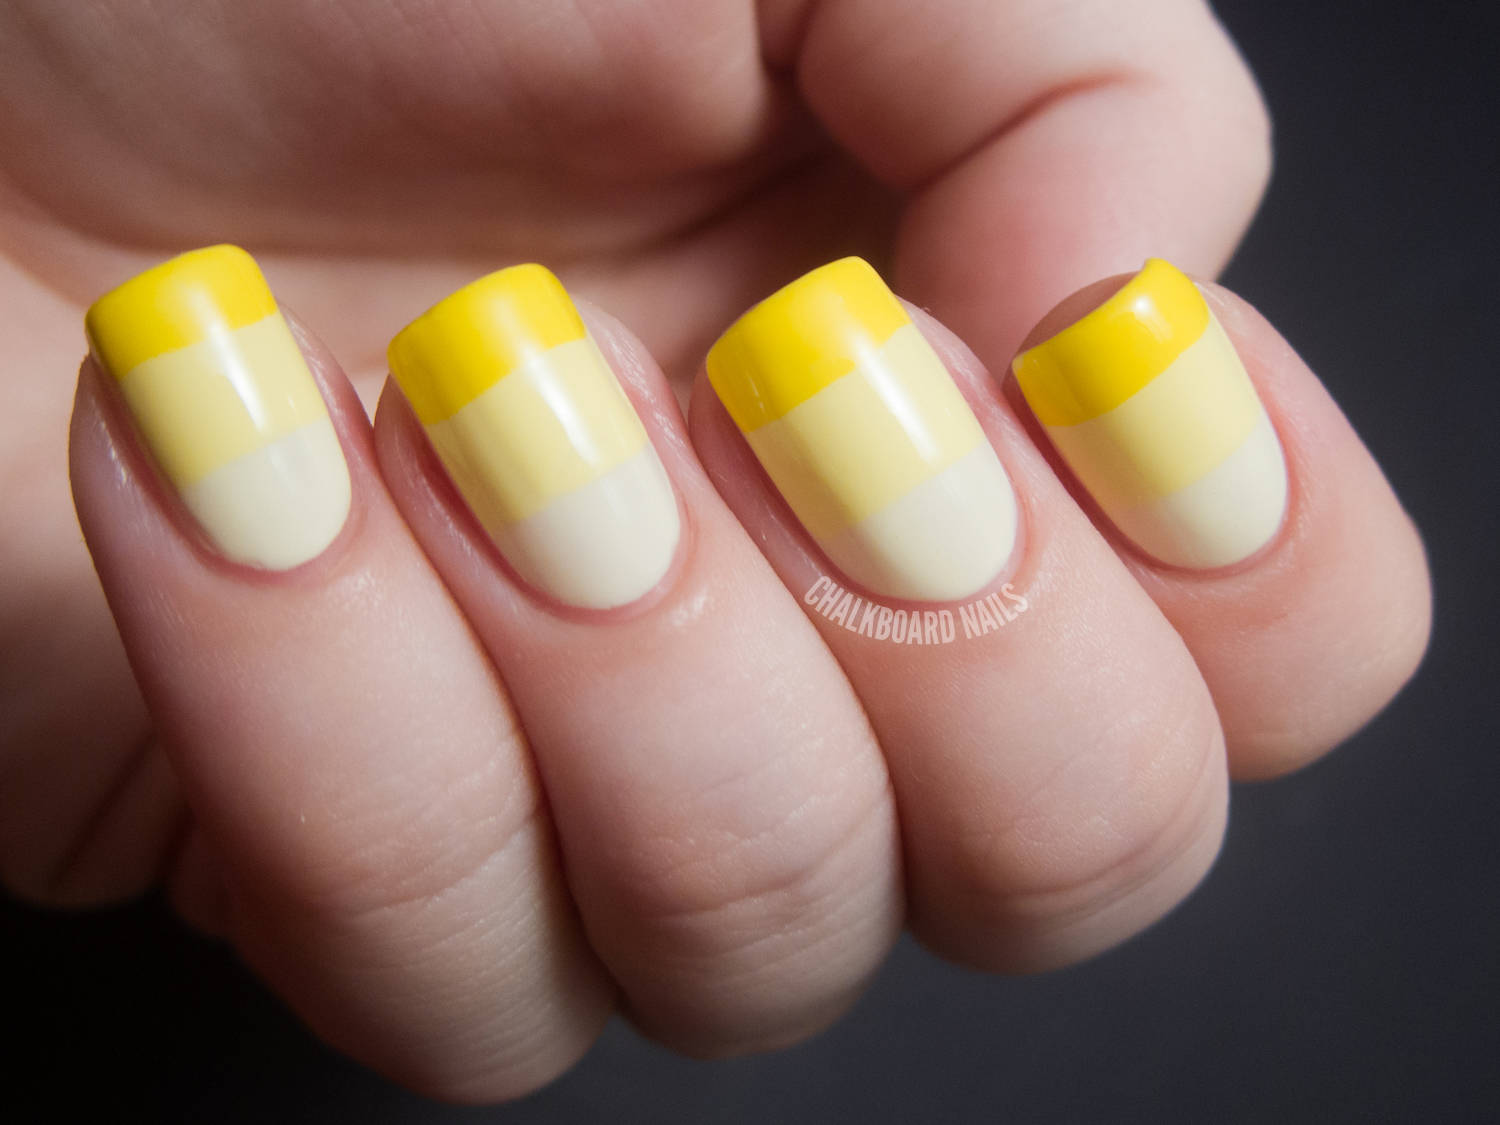 31DC2012: Day 03, Yellow Nails | Chalkboard Nails | Nail Art Blog